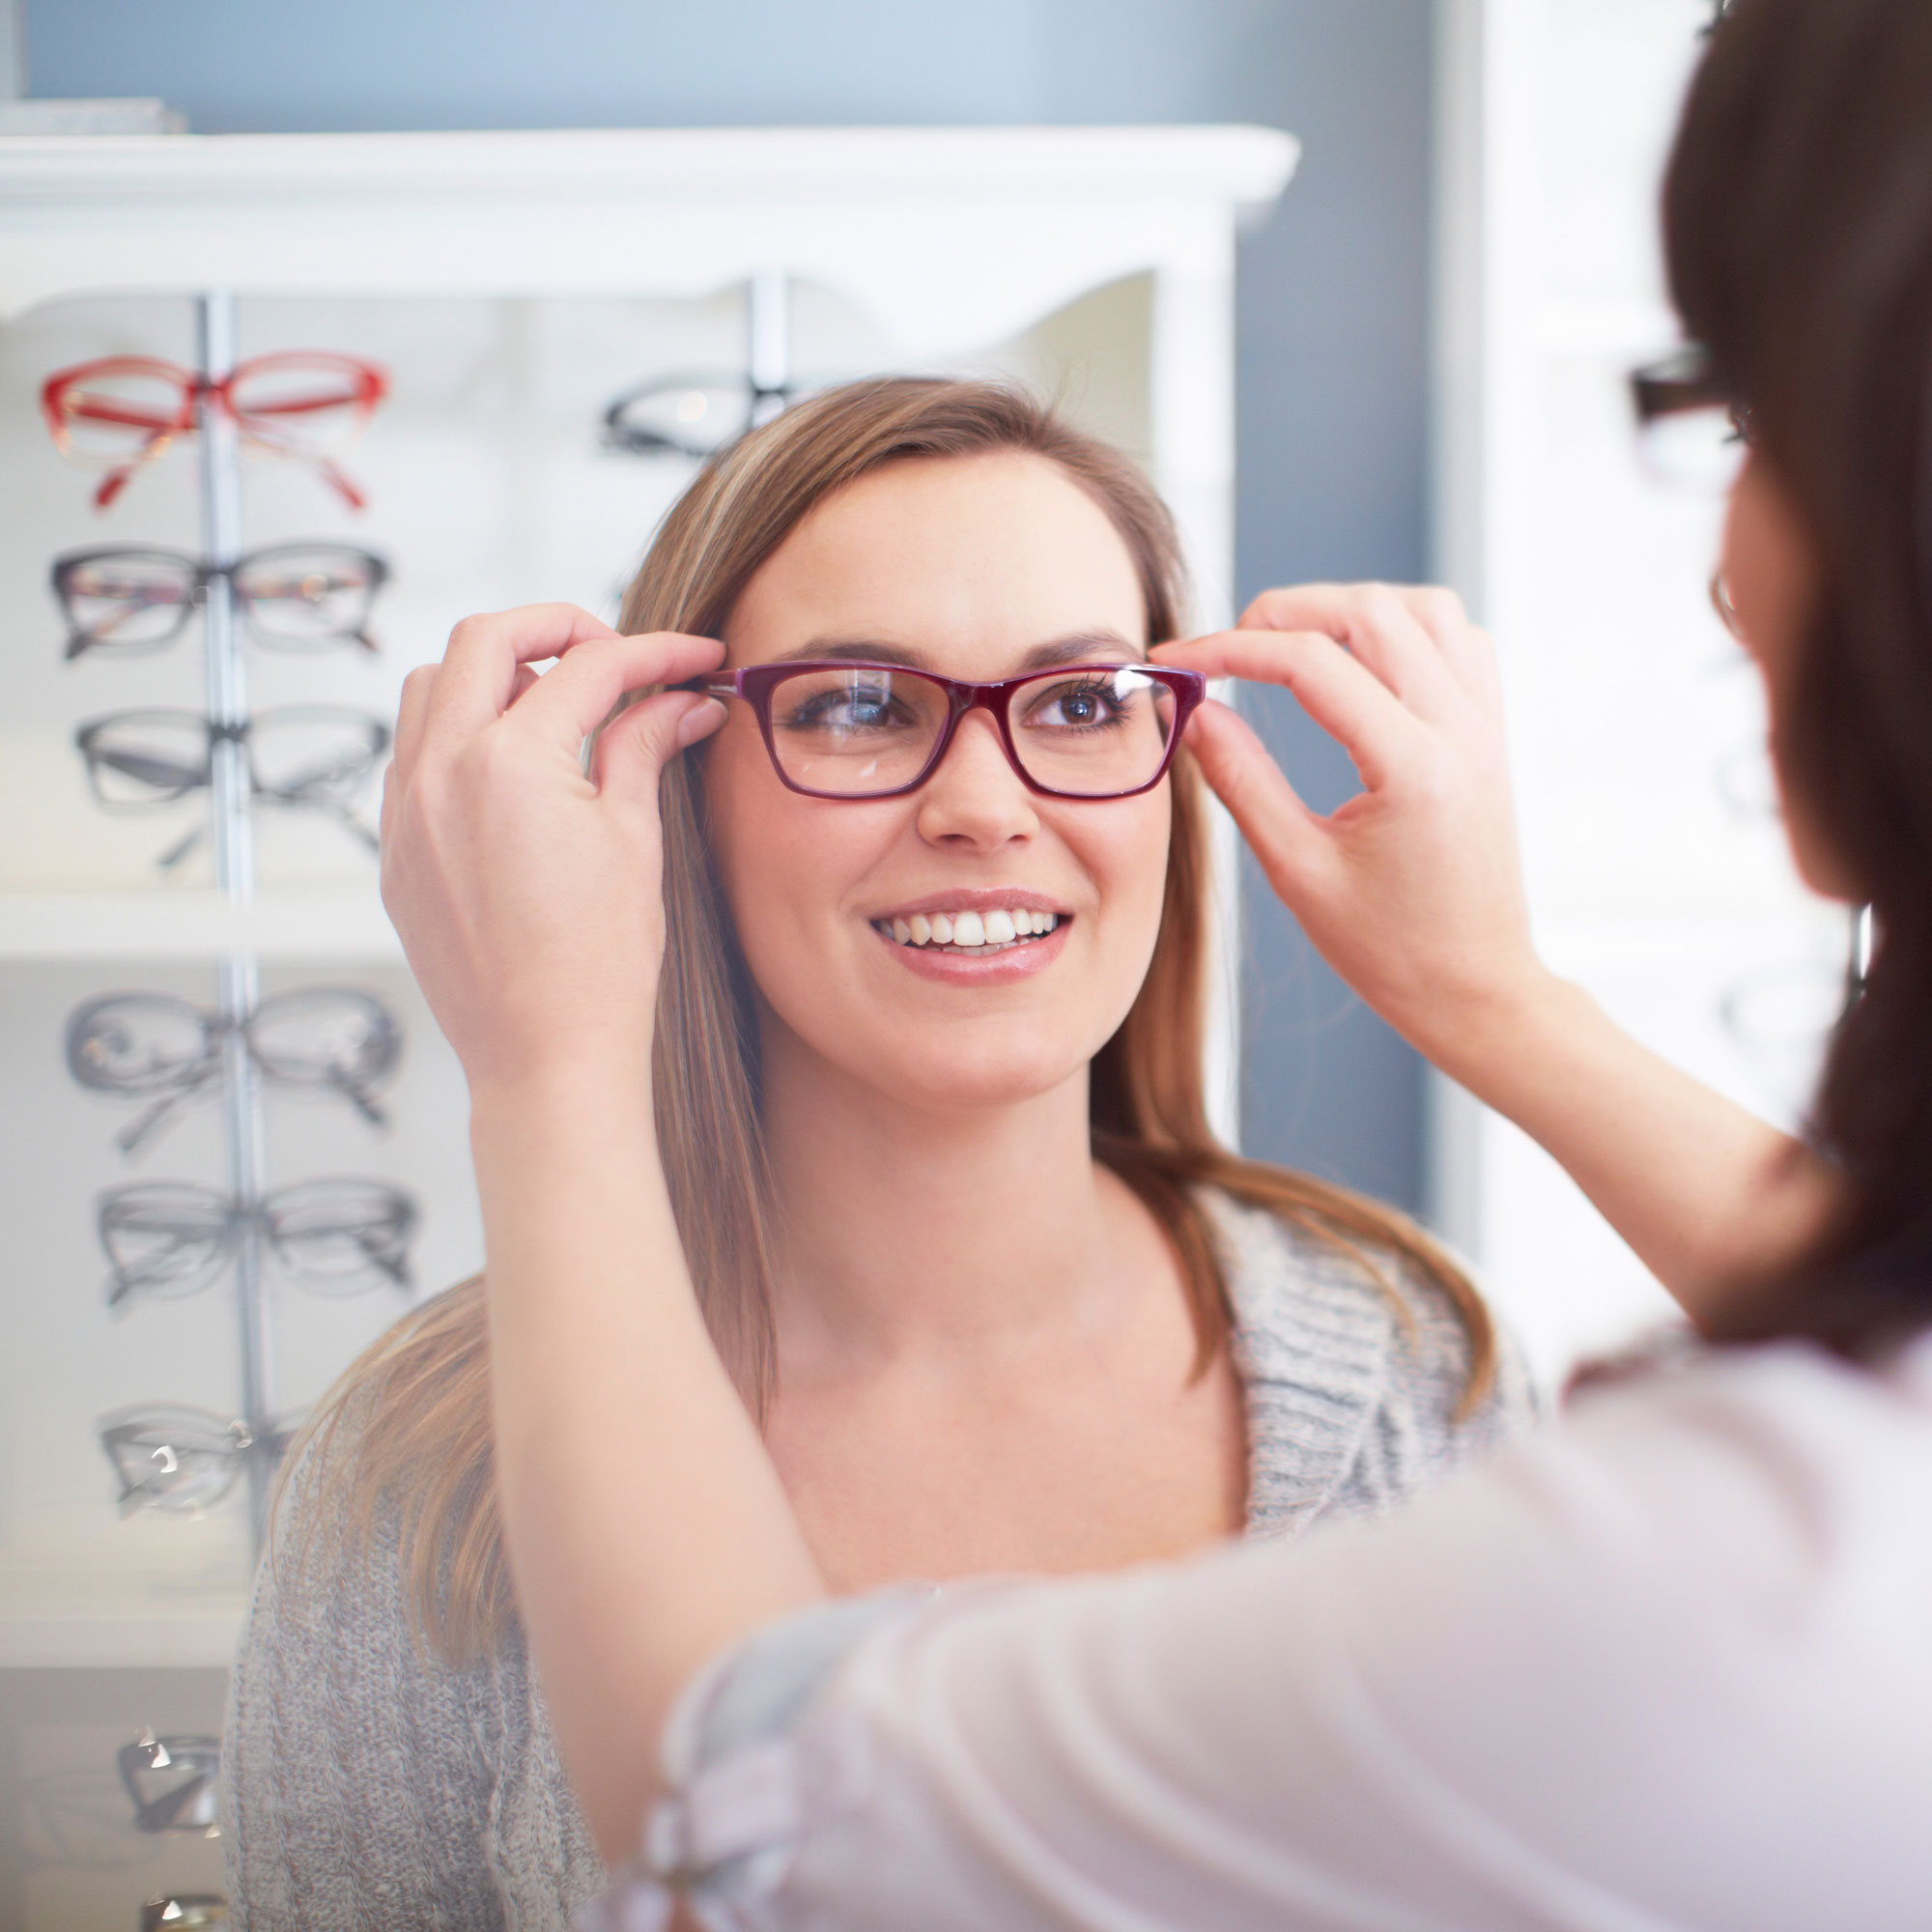 Woman trying on glasses in store.